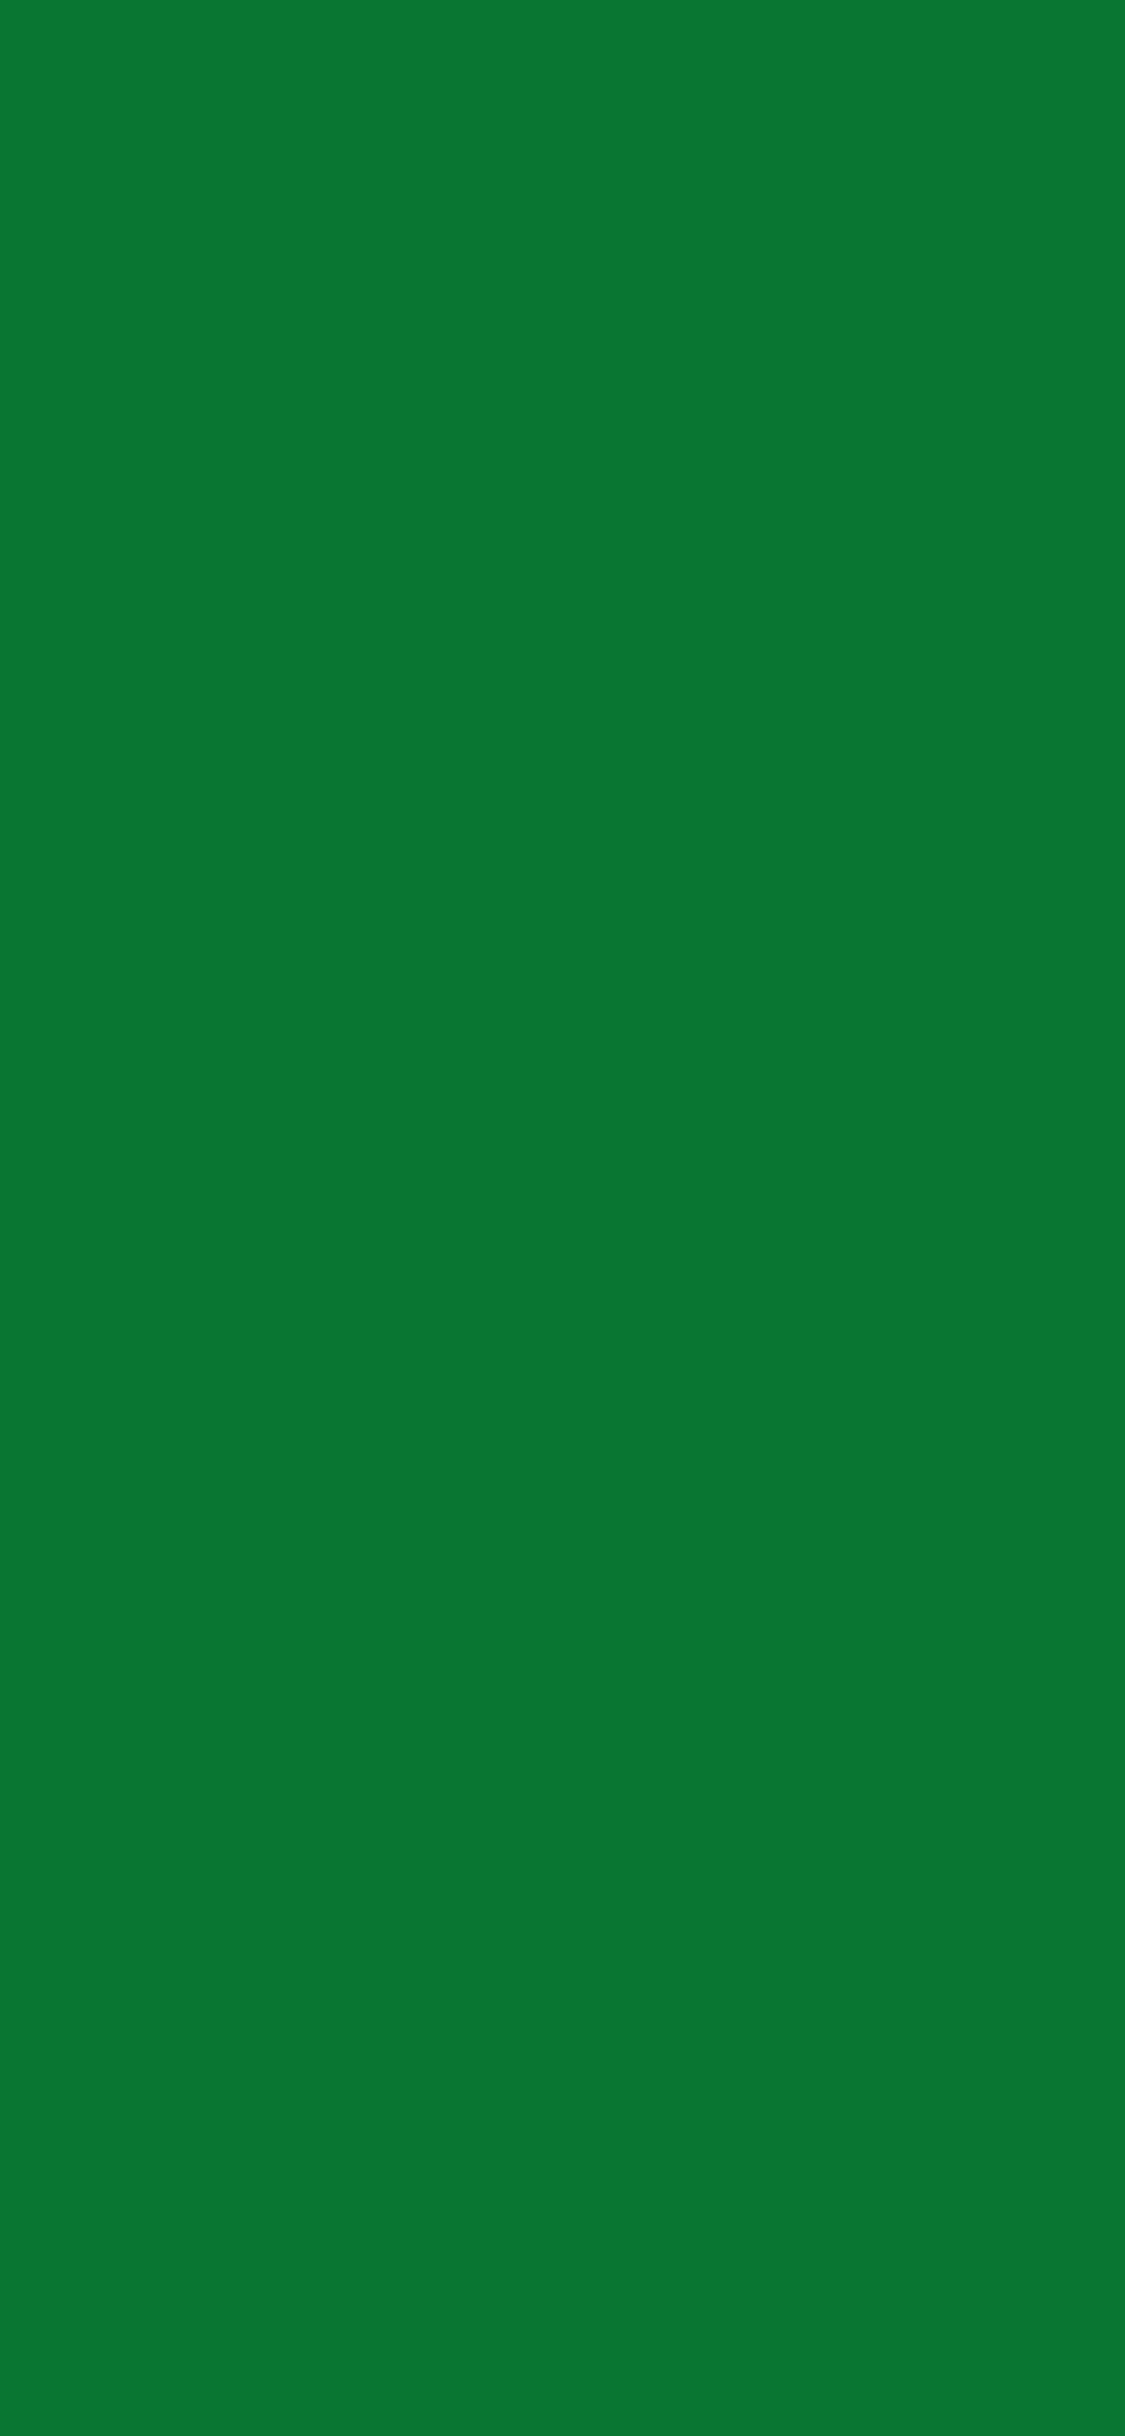 1125x2436 La Salle Green Solid Color Background